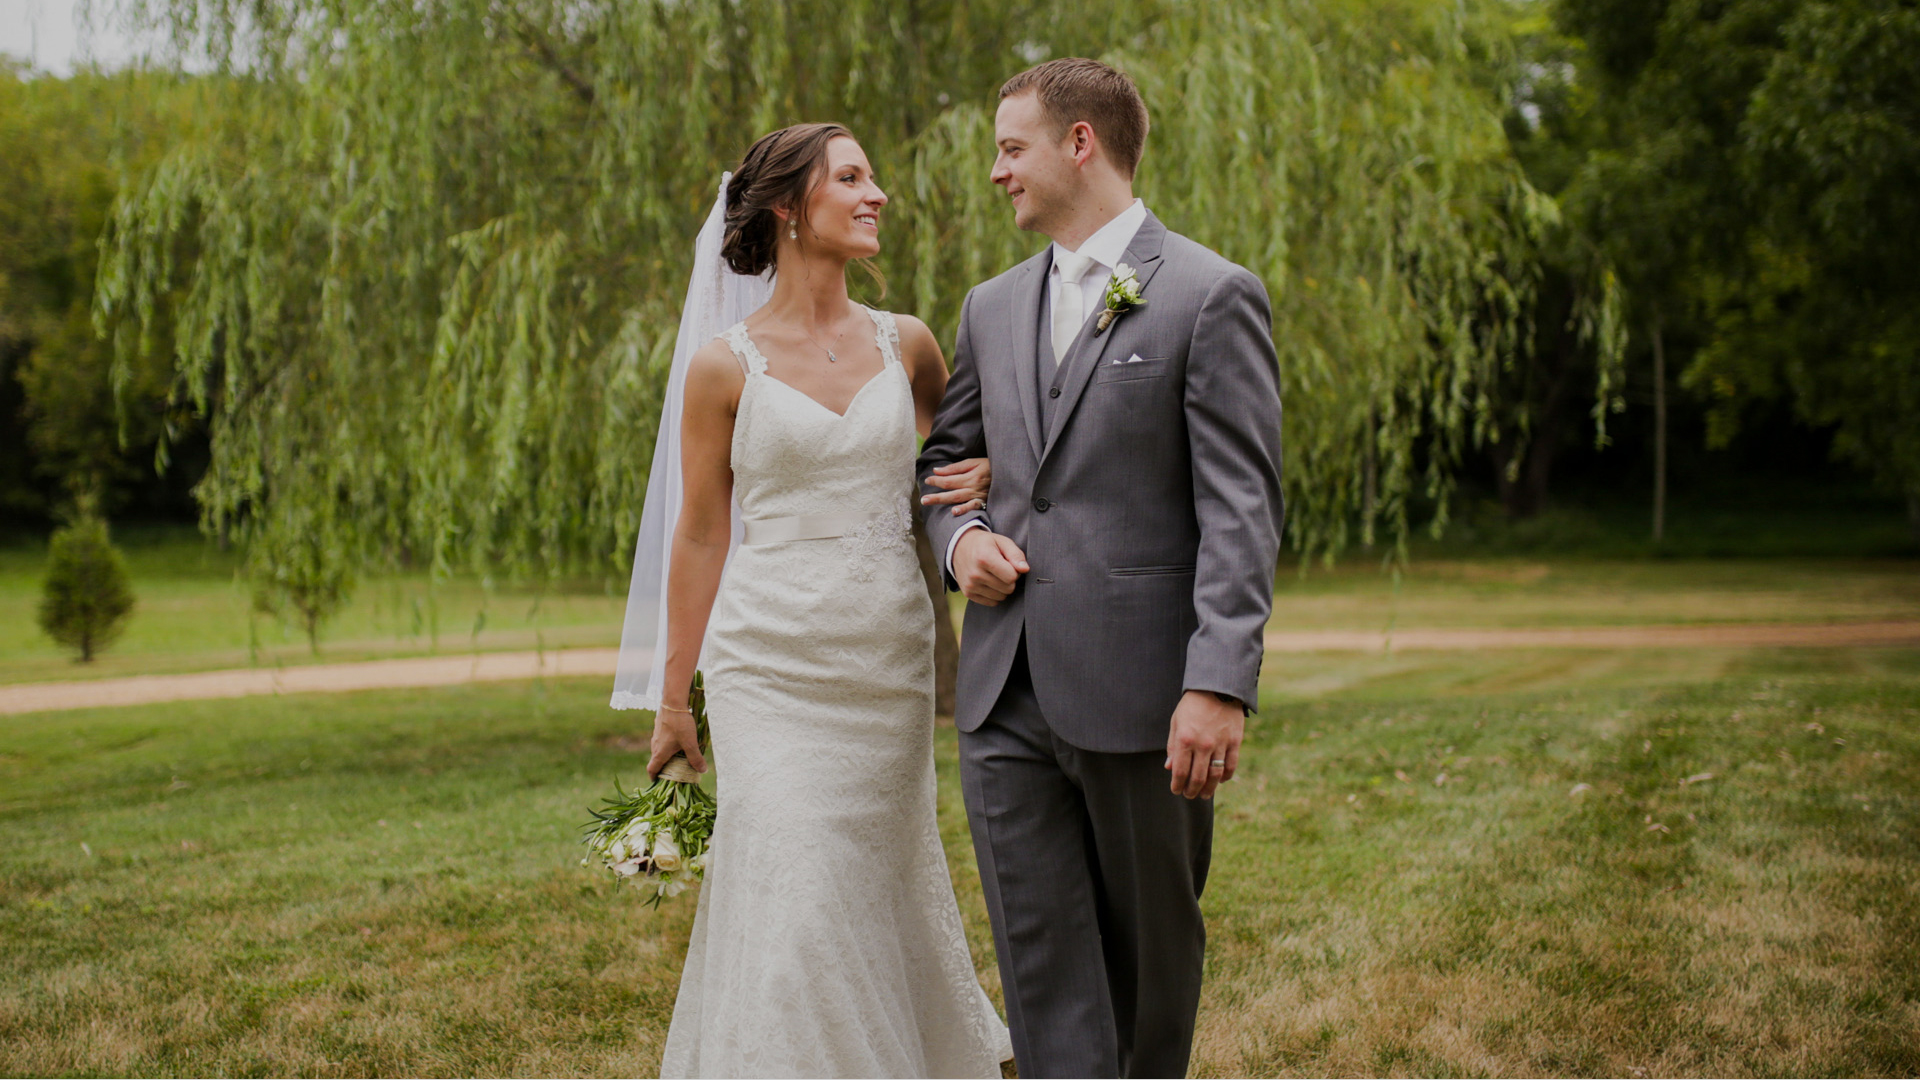 Check portfolios, pricing and availability for wedding photographers in Richmond